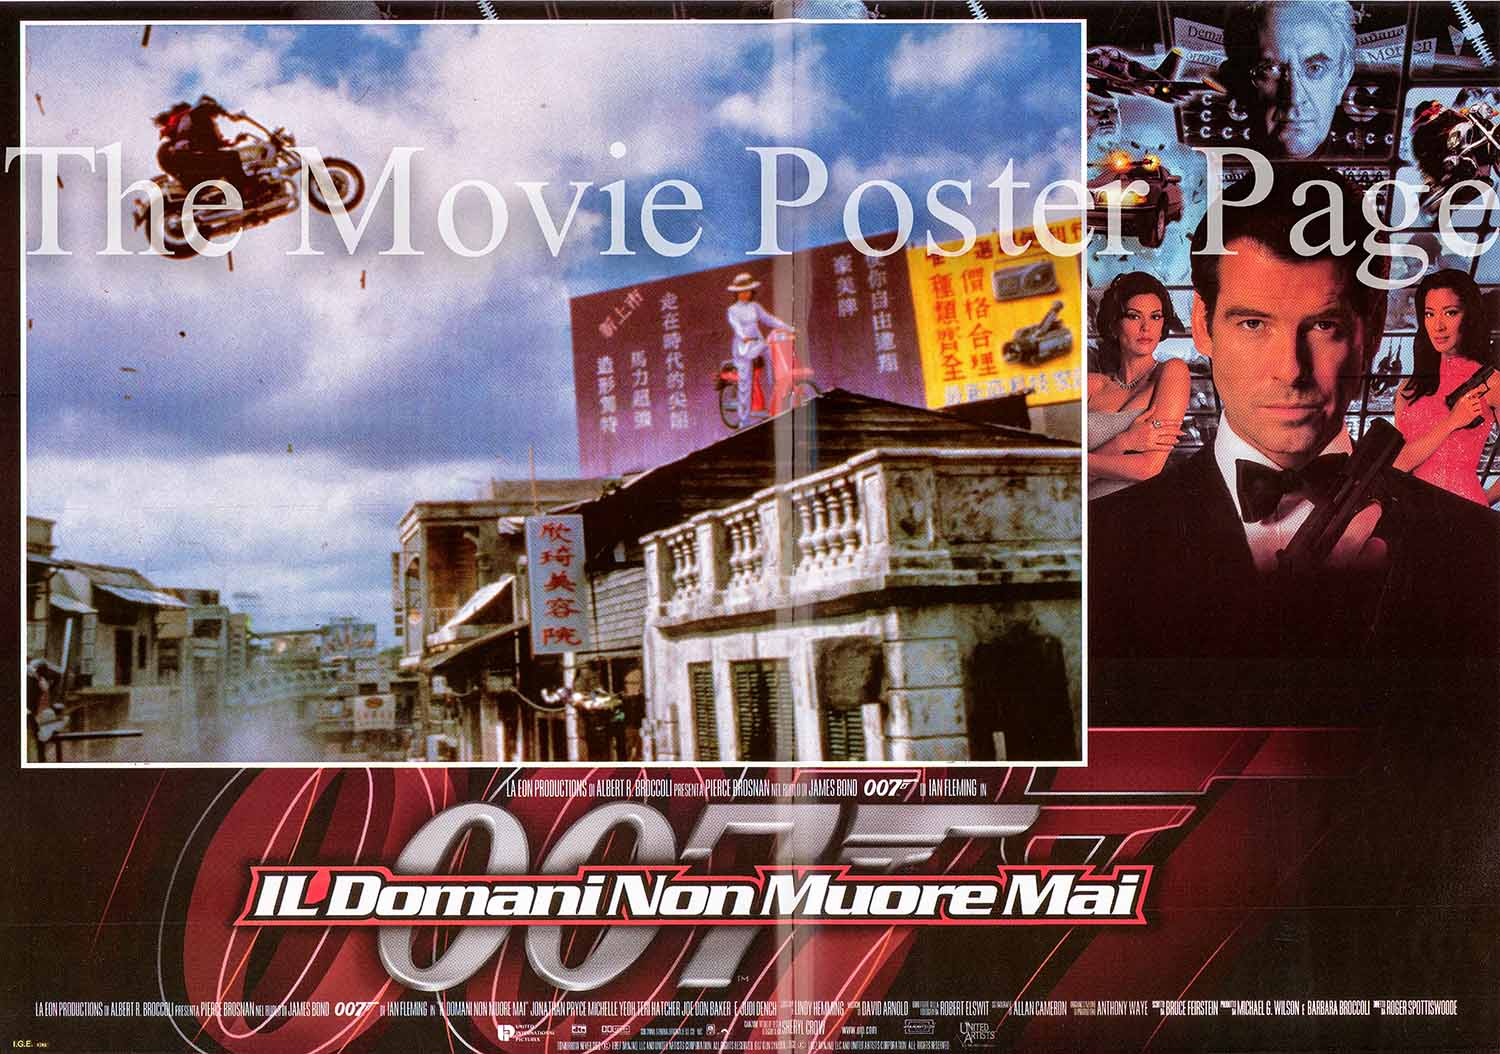 Pictured is an Italian promotional fotobusta for the 1997 Roger Spottiswoode film Tomorrow Never Dies based on a story by Bruce Fierstein and starring Pierce Brosnan as James Bond.